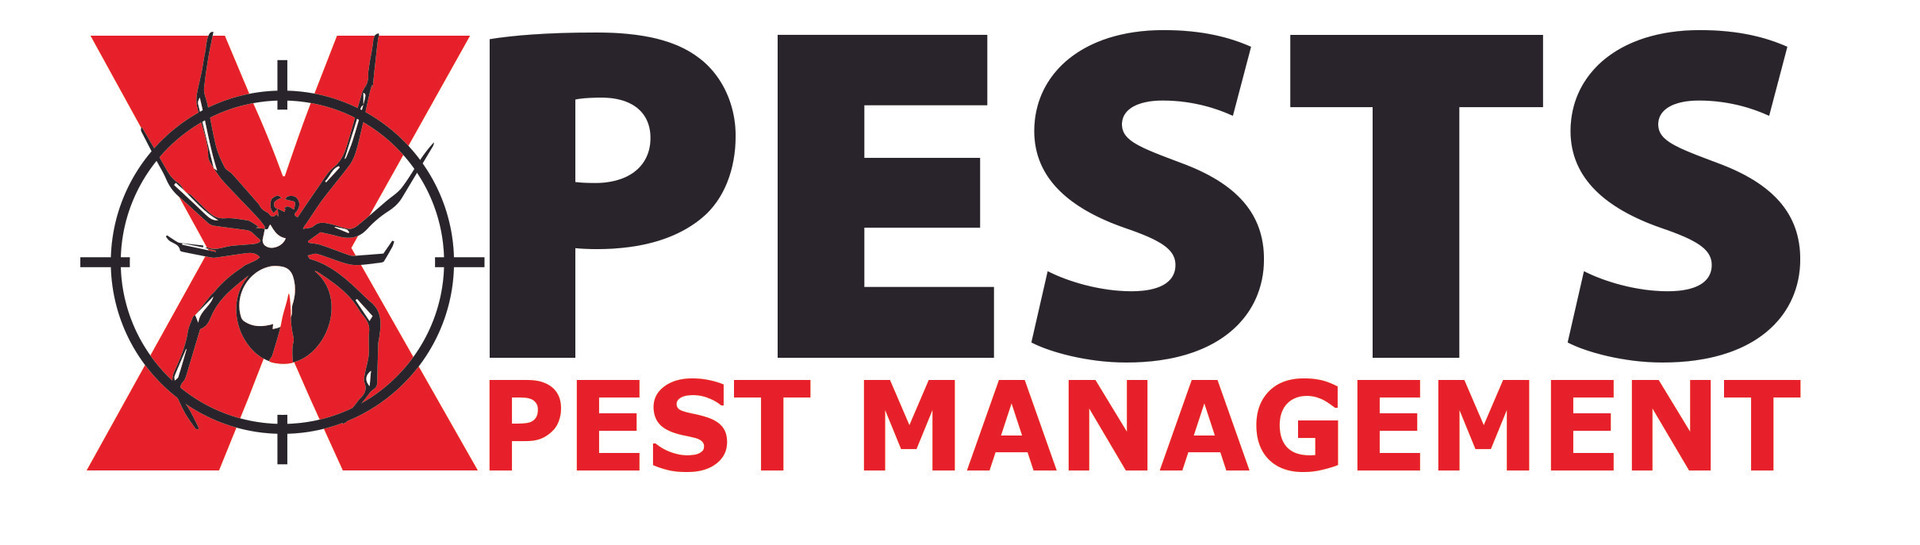 XPESTS Logo Design.jpg